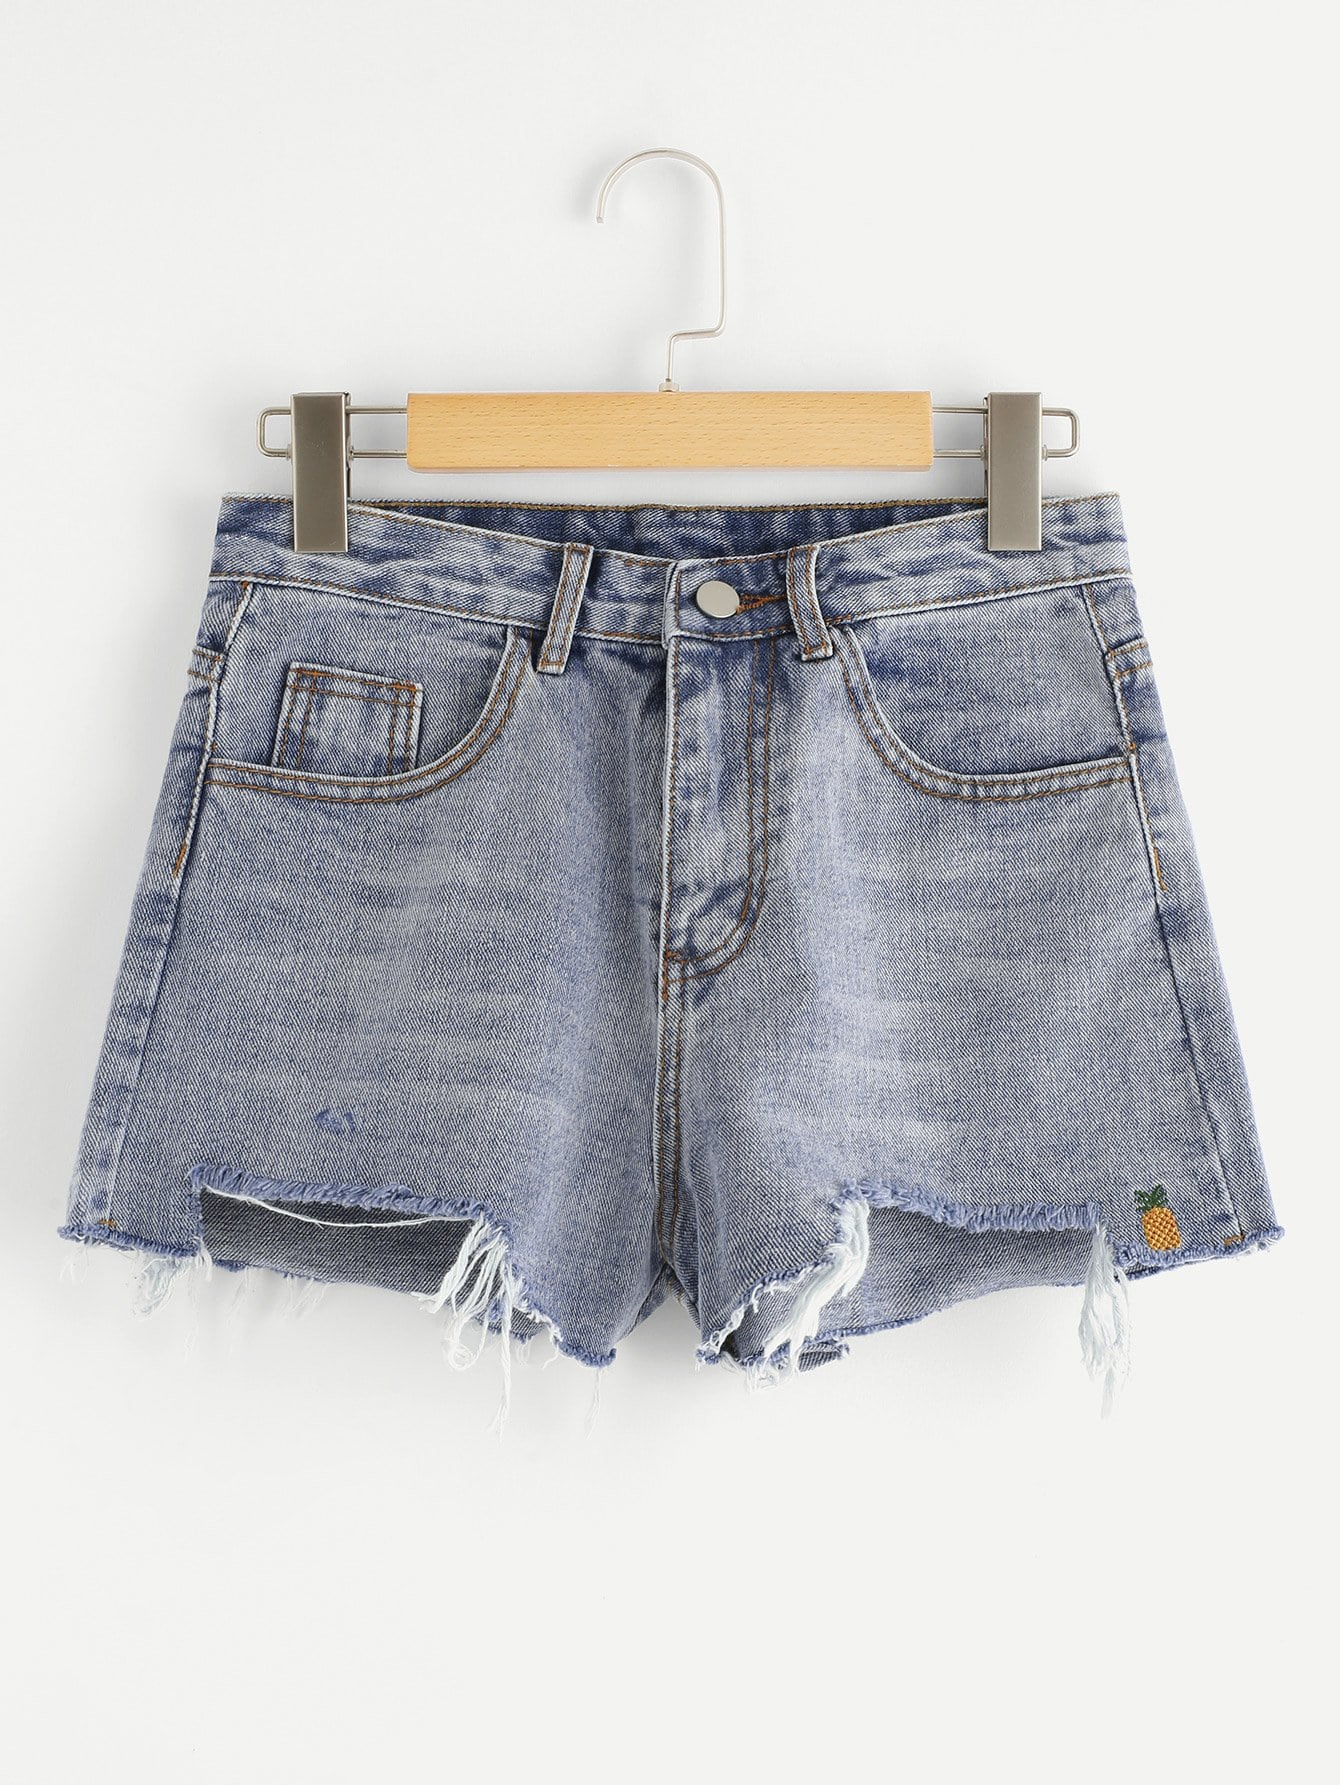 Pineapple Embroidered Fray Hem Denim Shorts шины michelin 215 225 235 255 285 55 60 65 16 r17r18